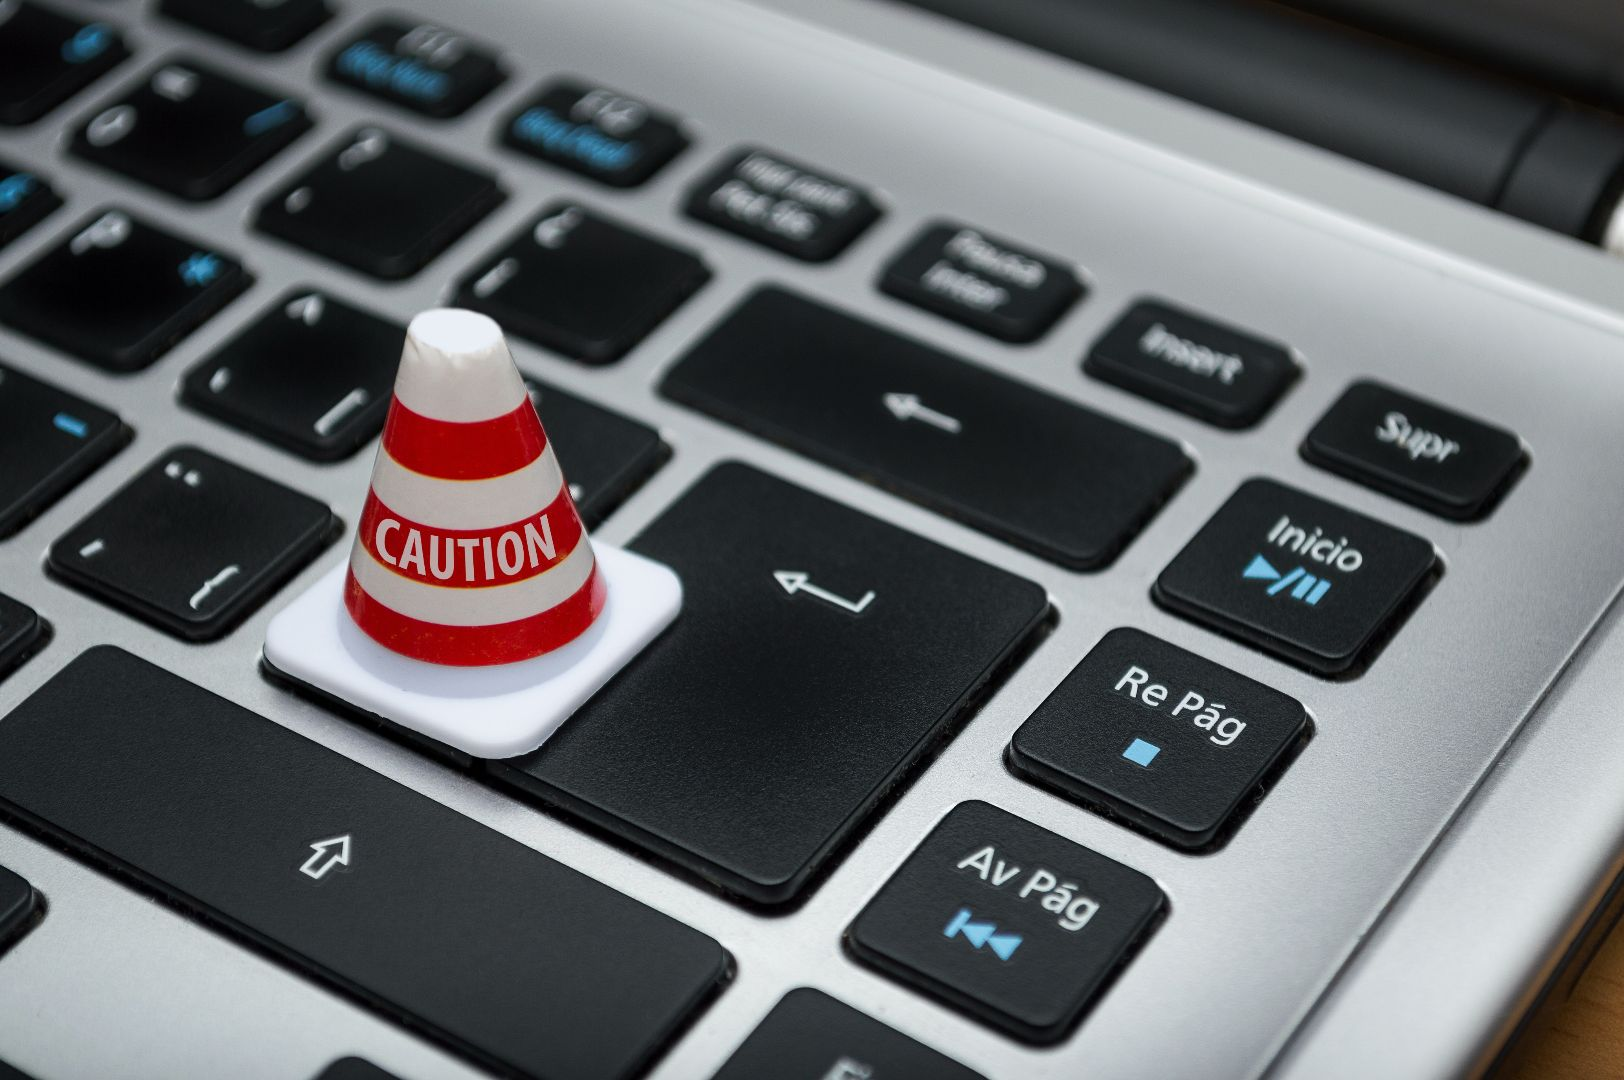 computer keyboard with miniature warning cone on top